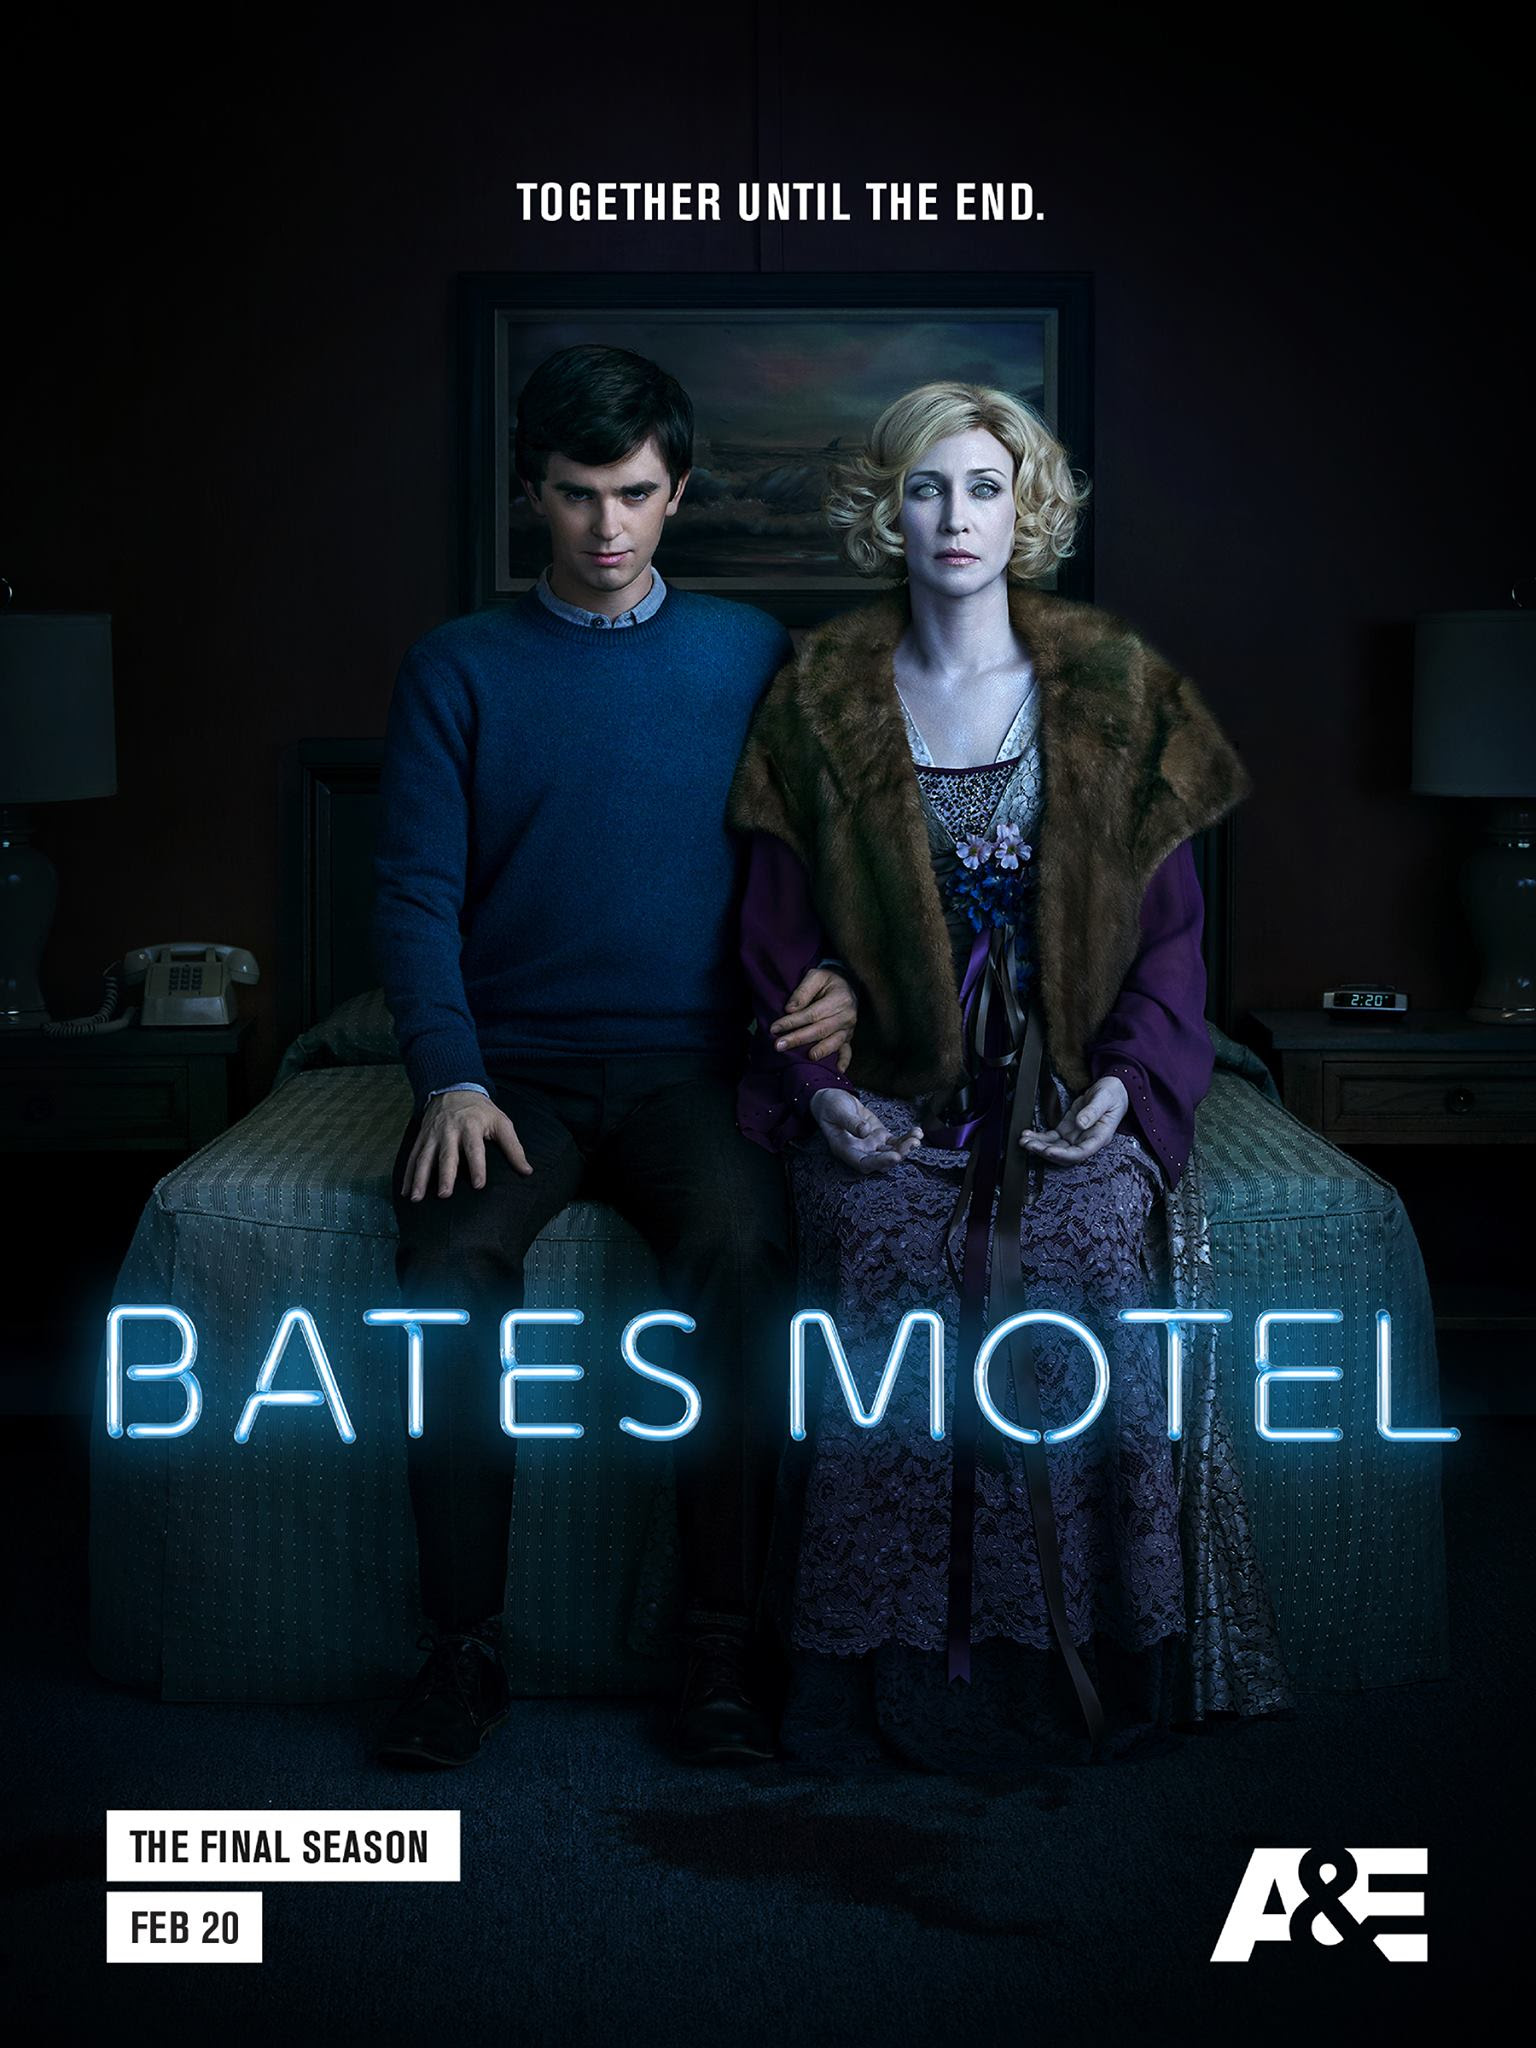 http://vignette3.wikia.nocookie.net/batesmotel/images/9/99/S5_Poster_1.jpg/revision/latest?cb=20170120205126